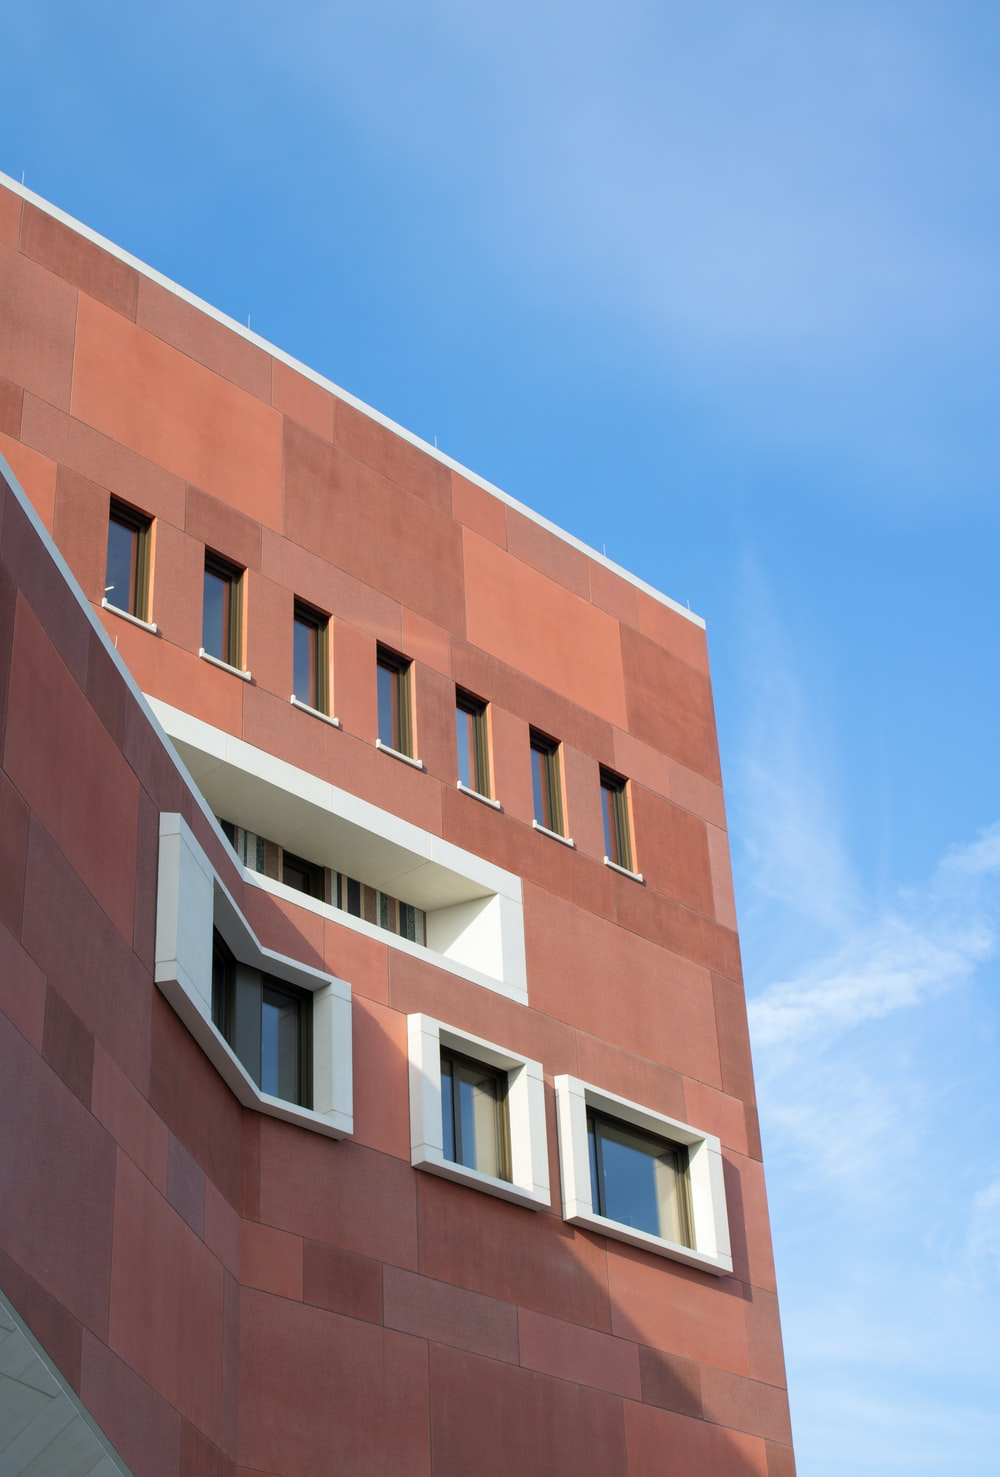 low-angle photography of red concrete building under blue sky